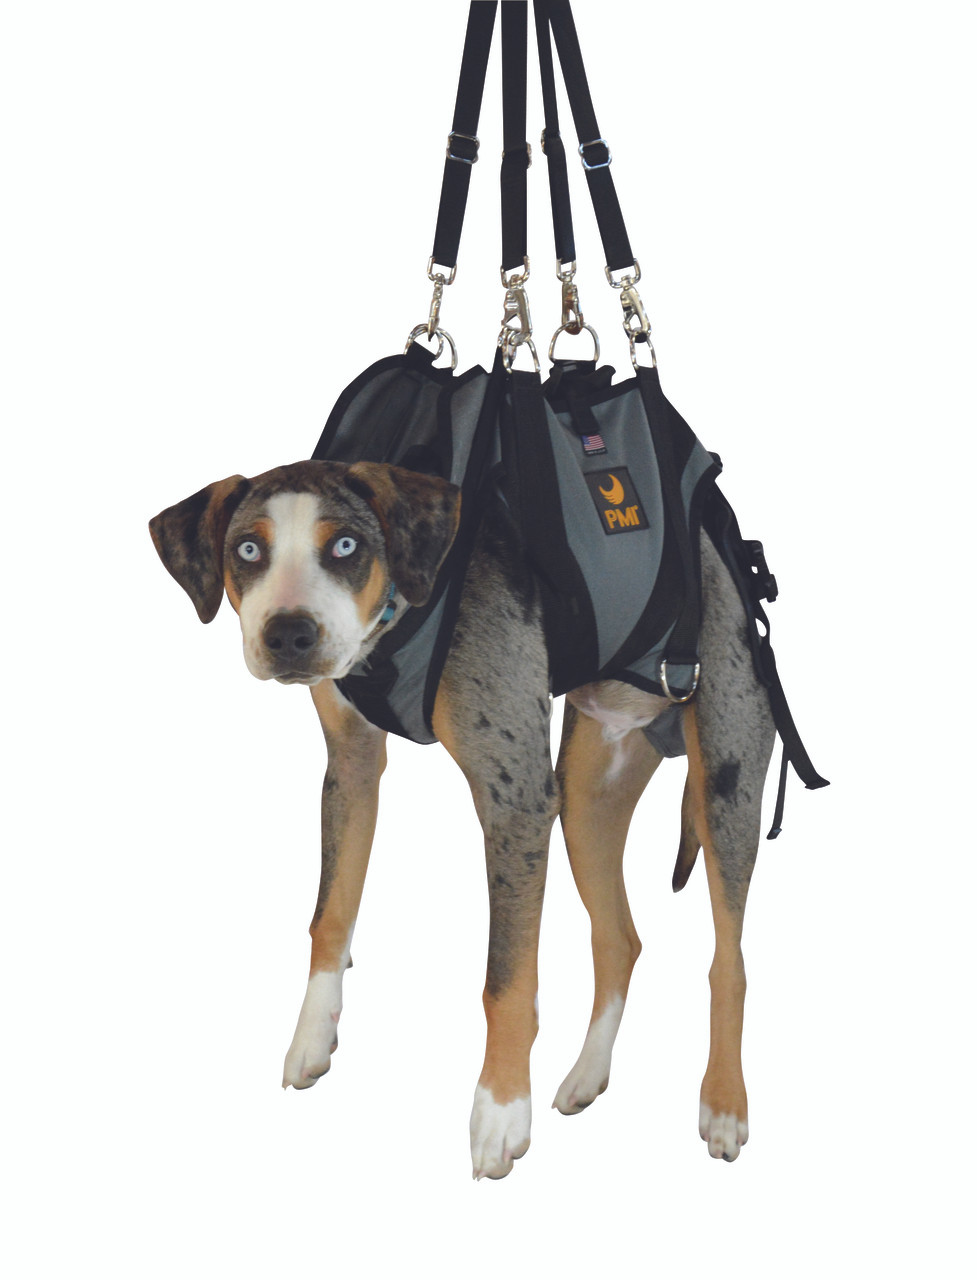 hight resolution of anexk9 harness